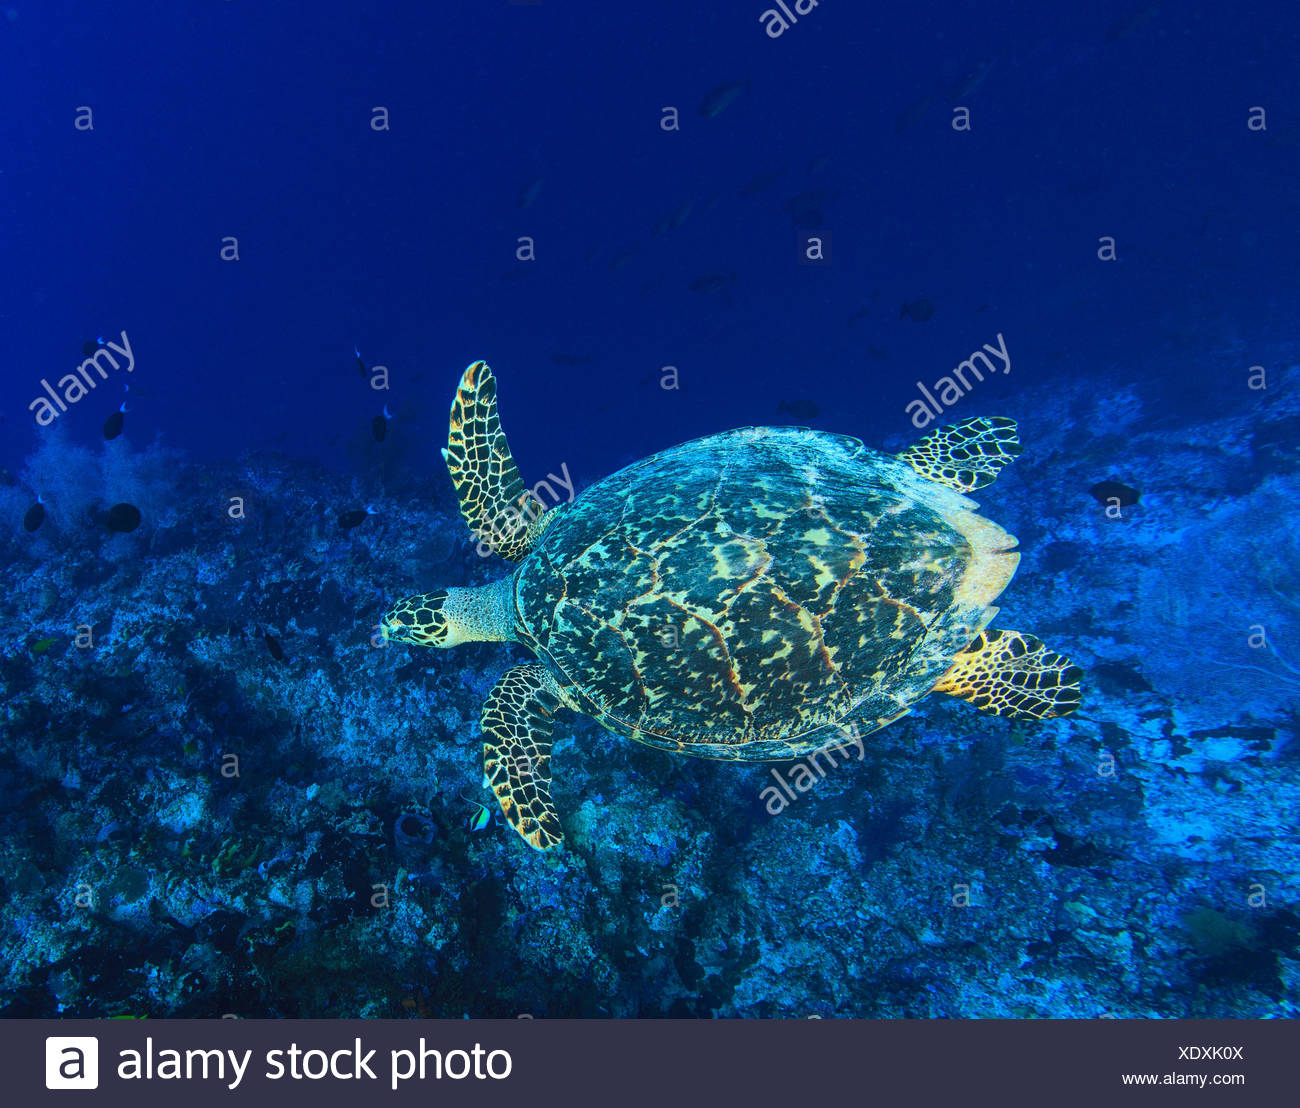 Sea turtle swimming in coral reef - Stock Image